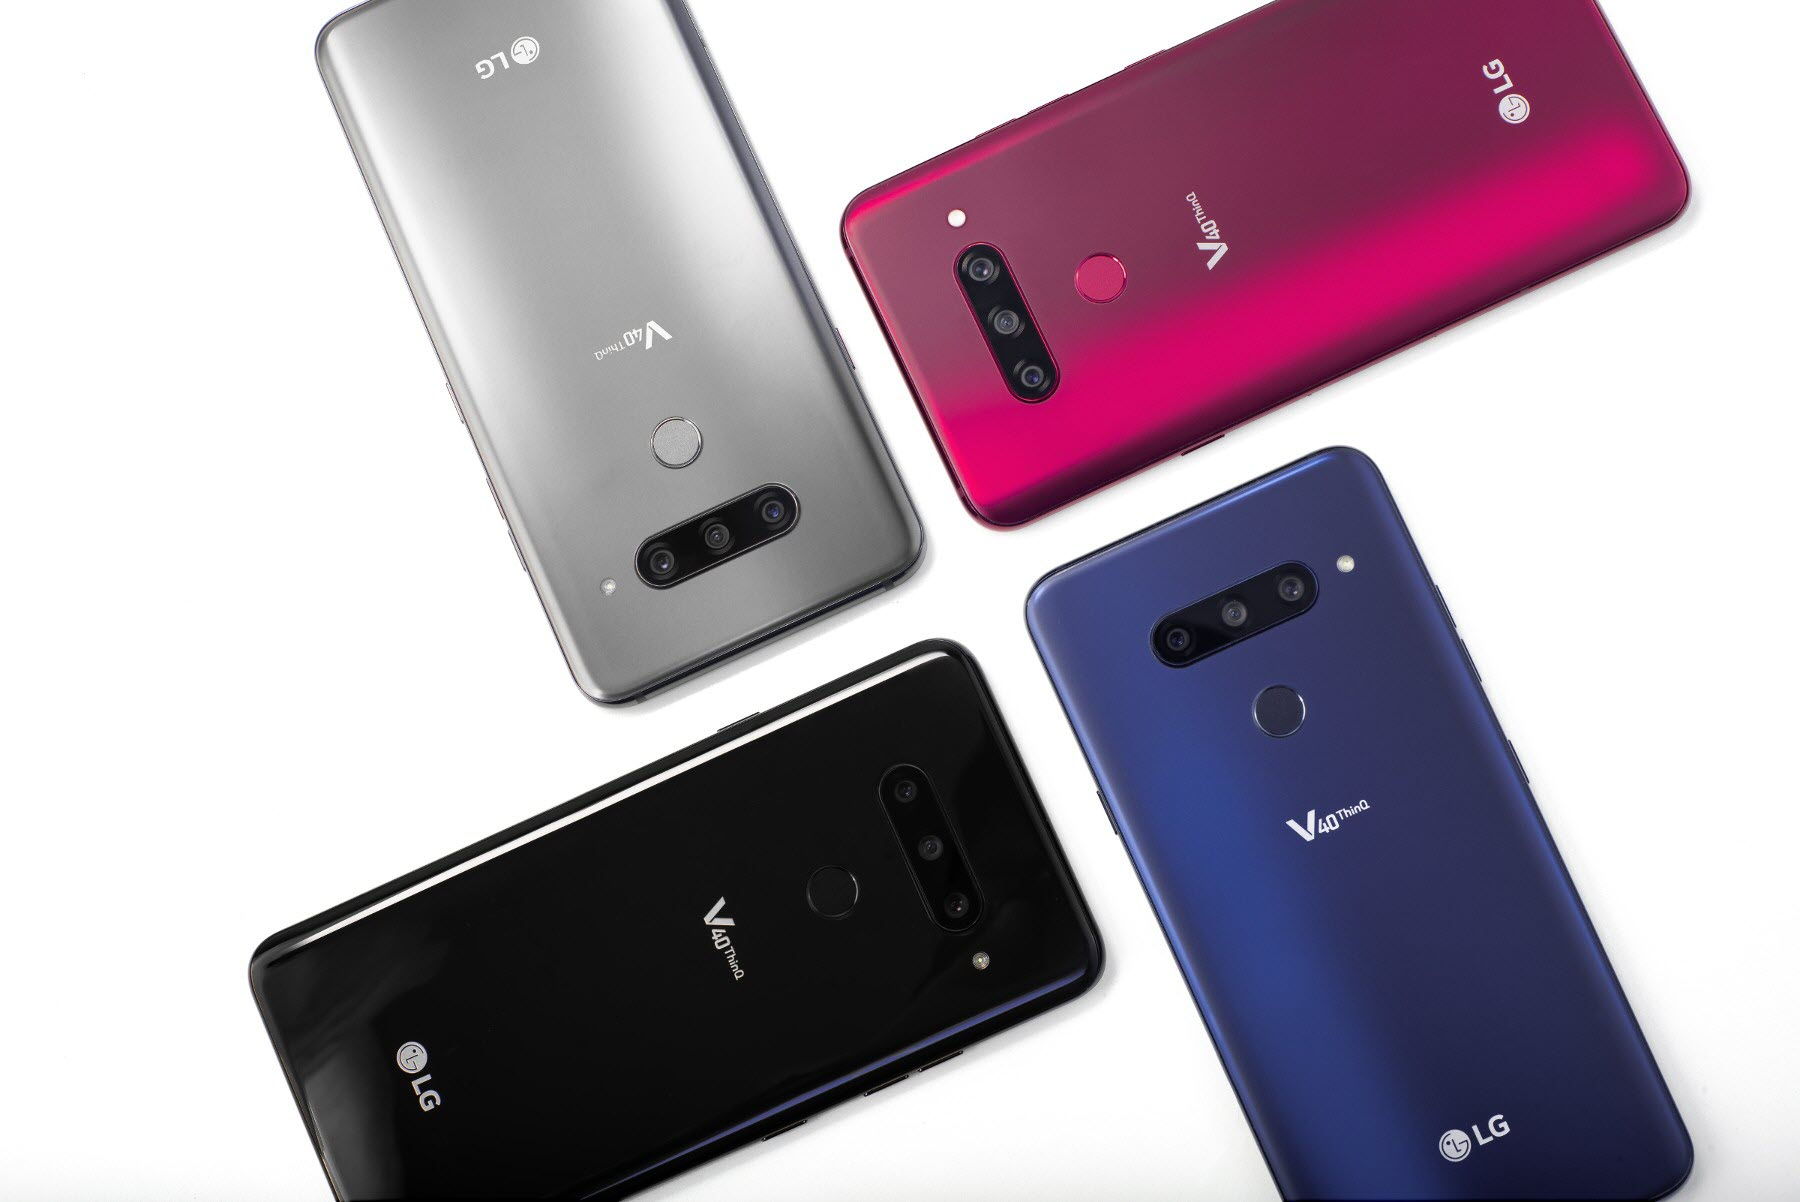 LG V40 ThinQ with a 5 camera design announced: 10 key features